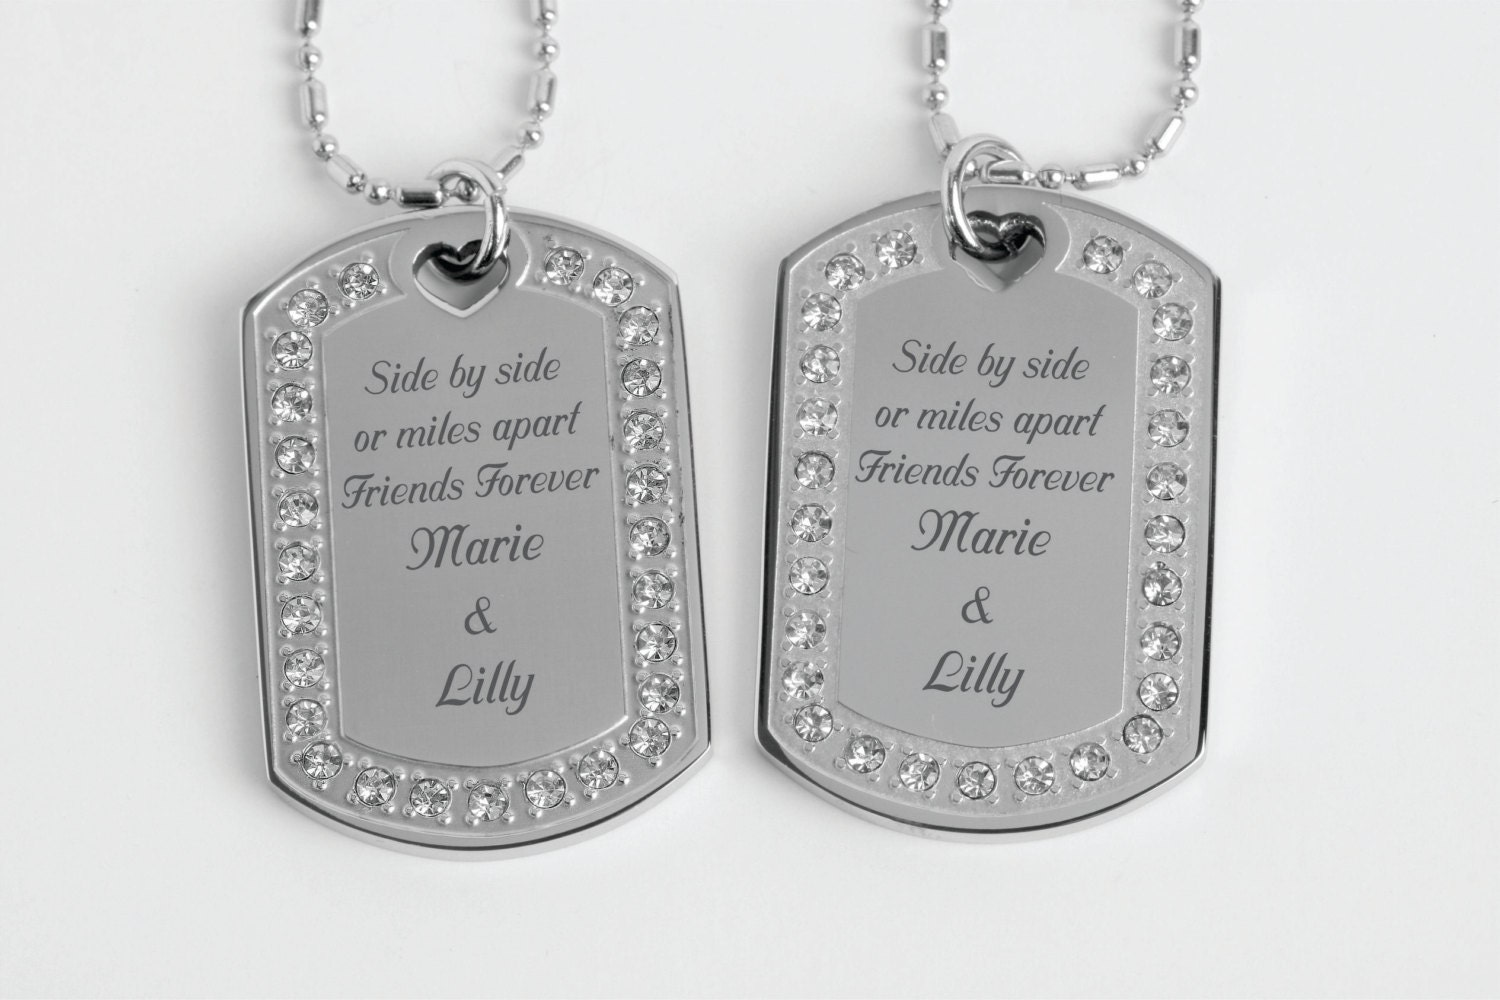 personalized necklaces rhinestone silver dog tag necklace set. Black Bedroom Furniture Sets. Home Design Ideas